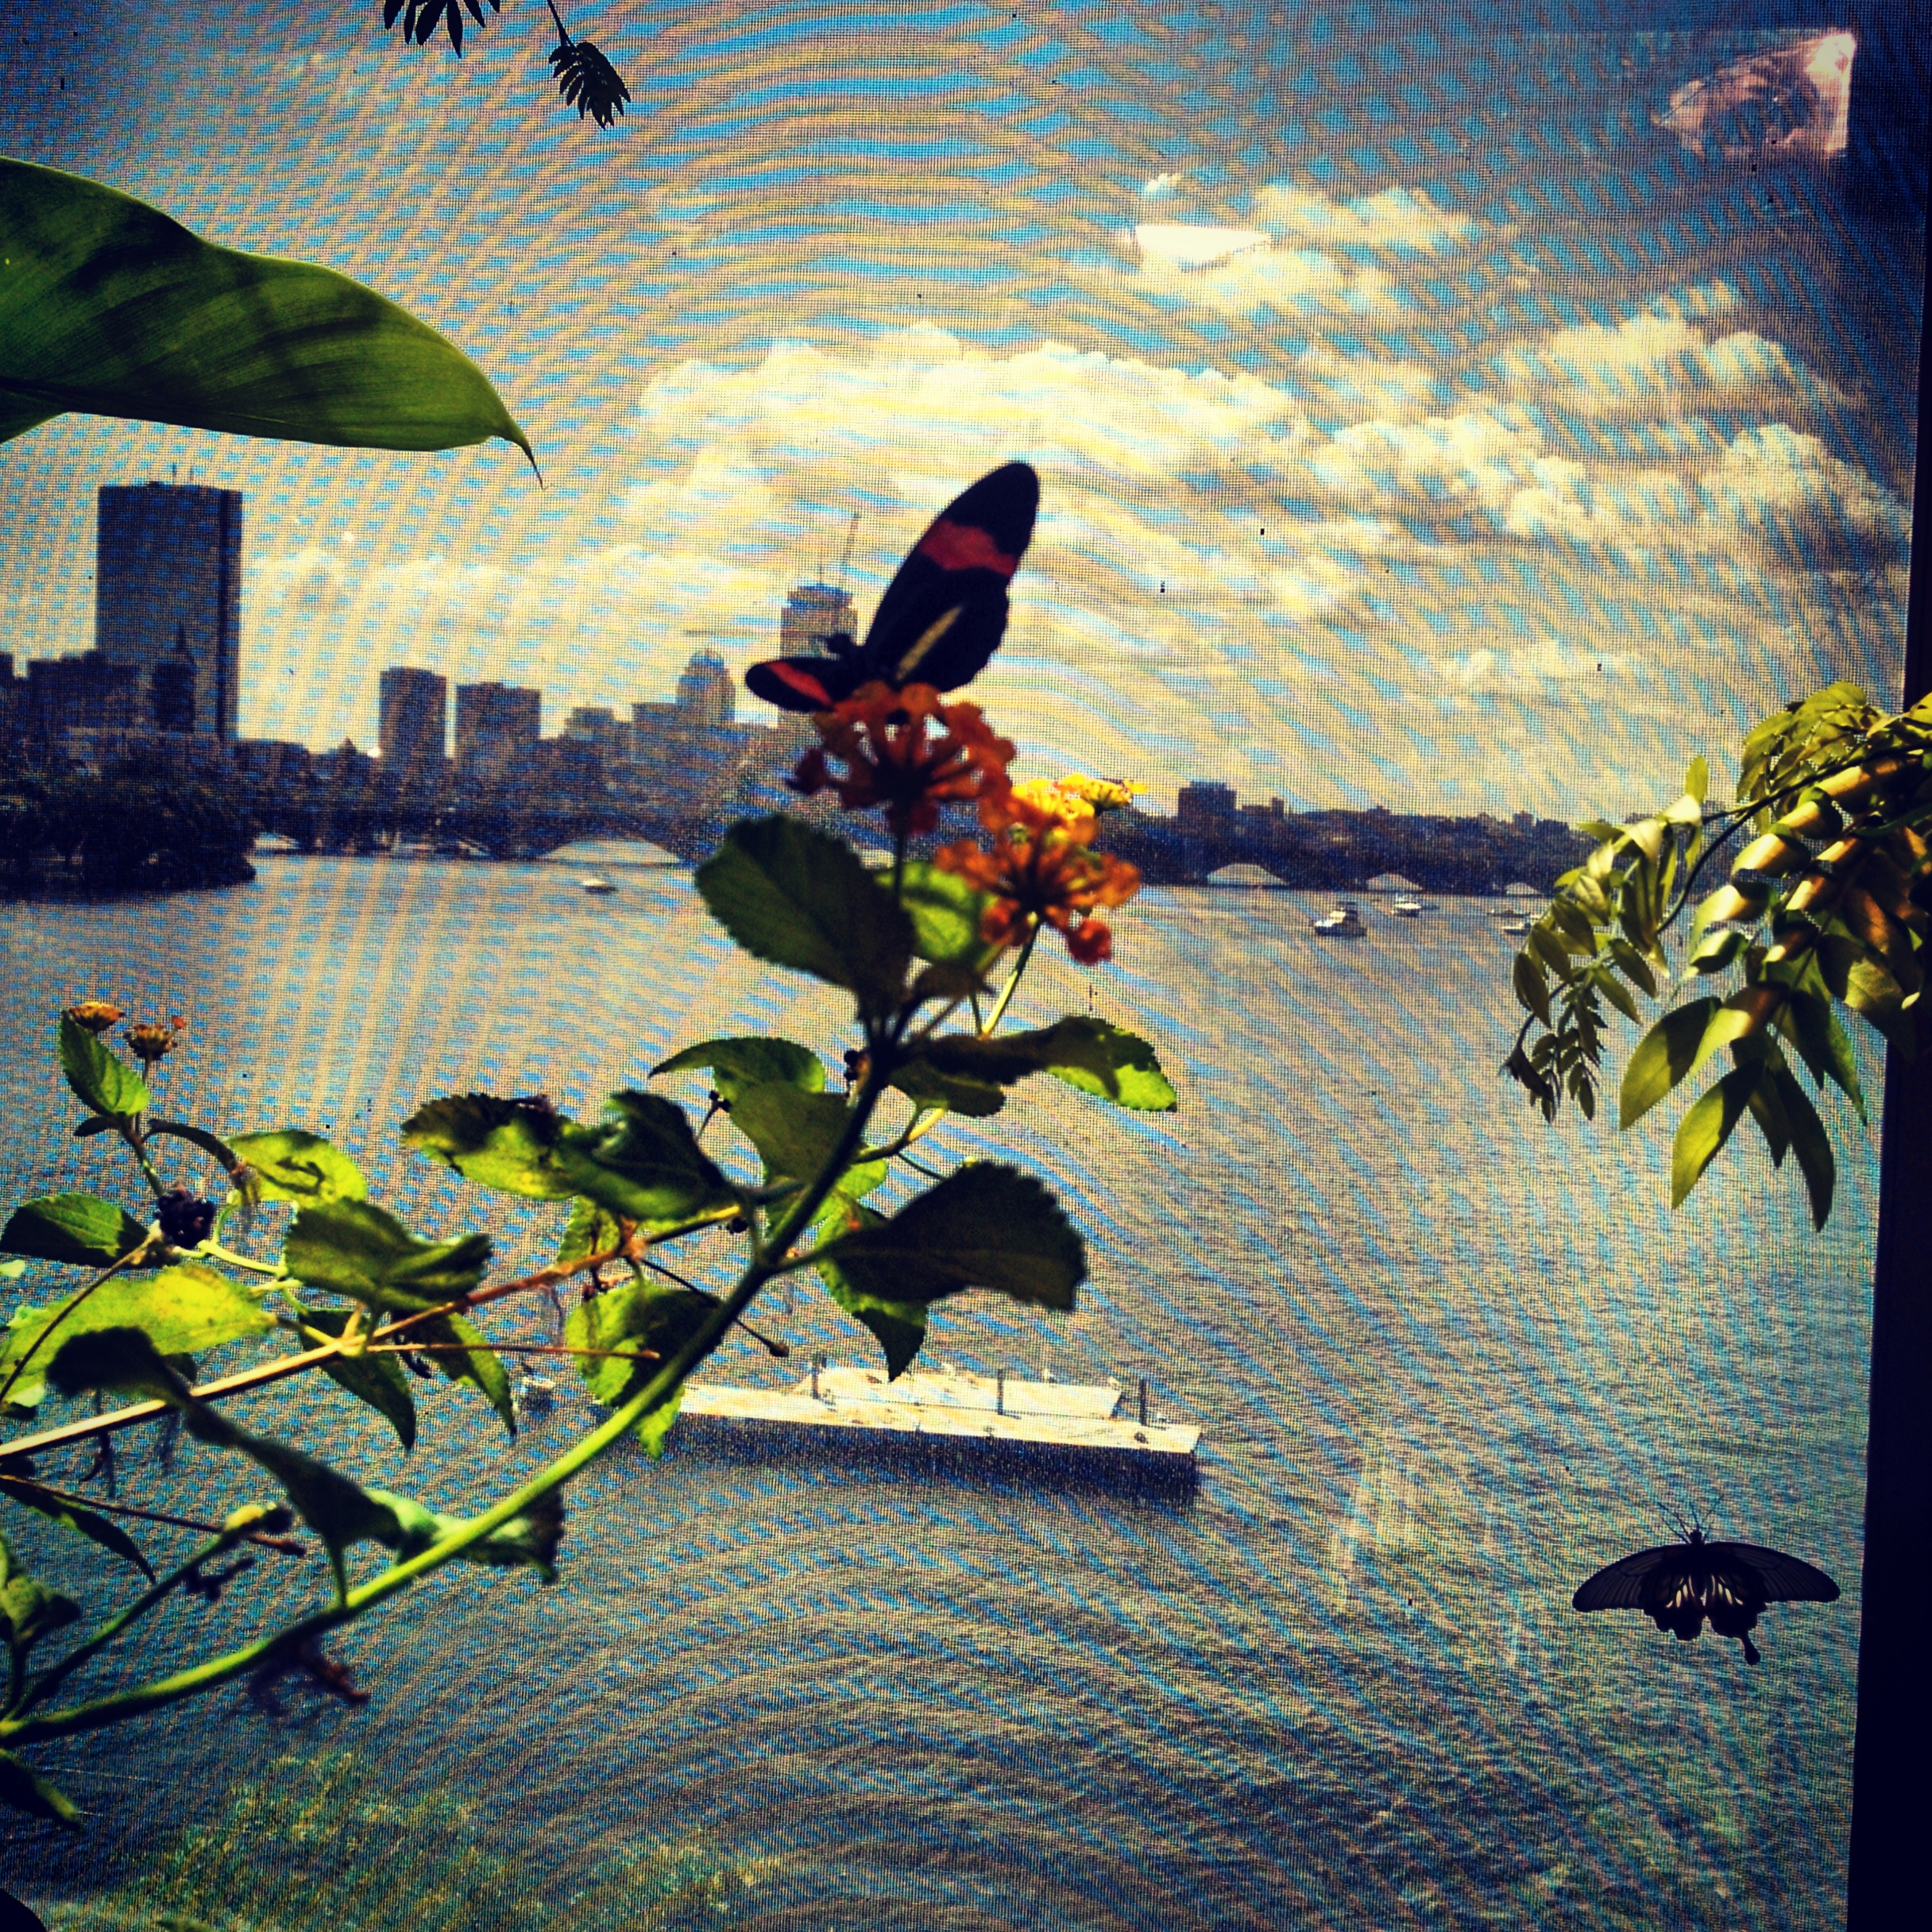 Butterfly house overlooking Boston City Skyline